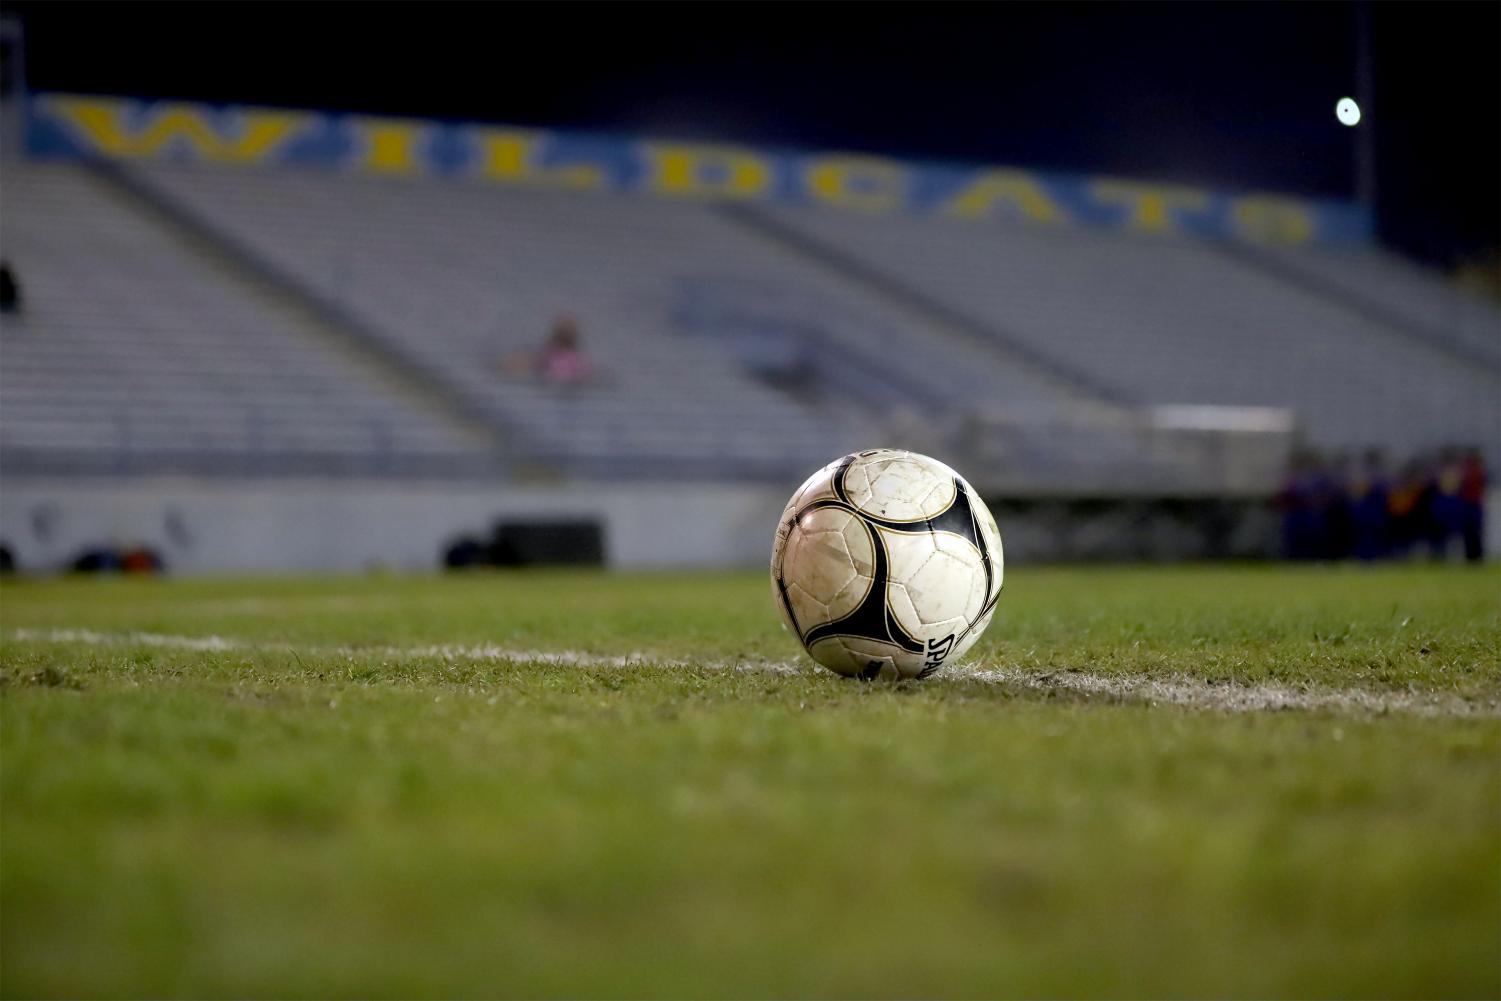 Soccer ball placed in the middle of the Taft High's Martin Memorial Stadium field during halftime for the TUHS Wildcat JV boys' soccer team.